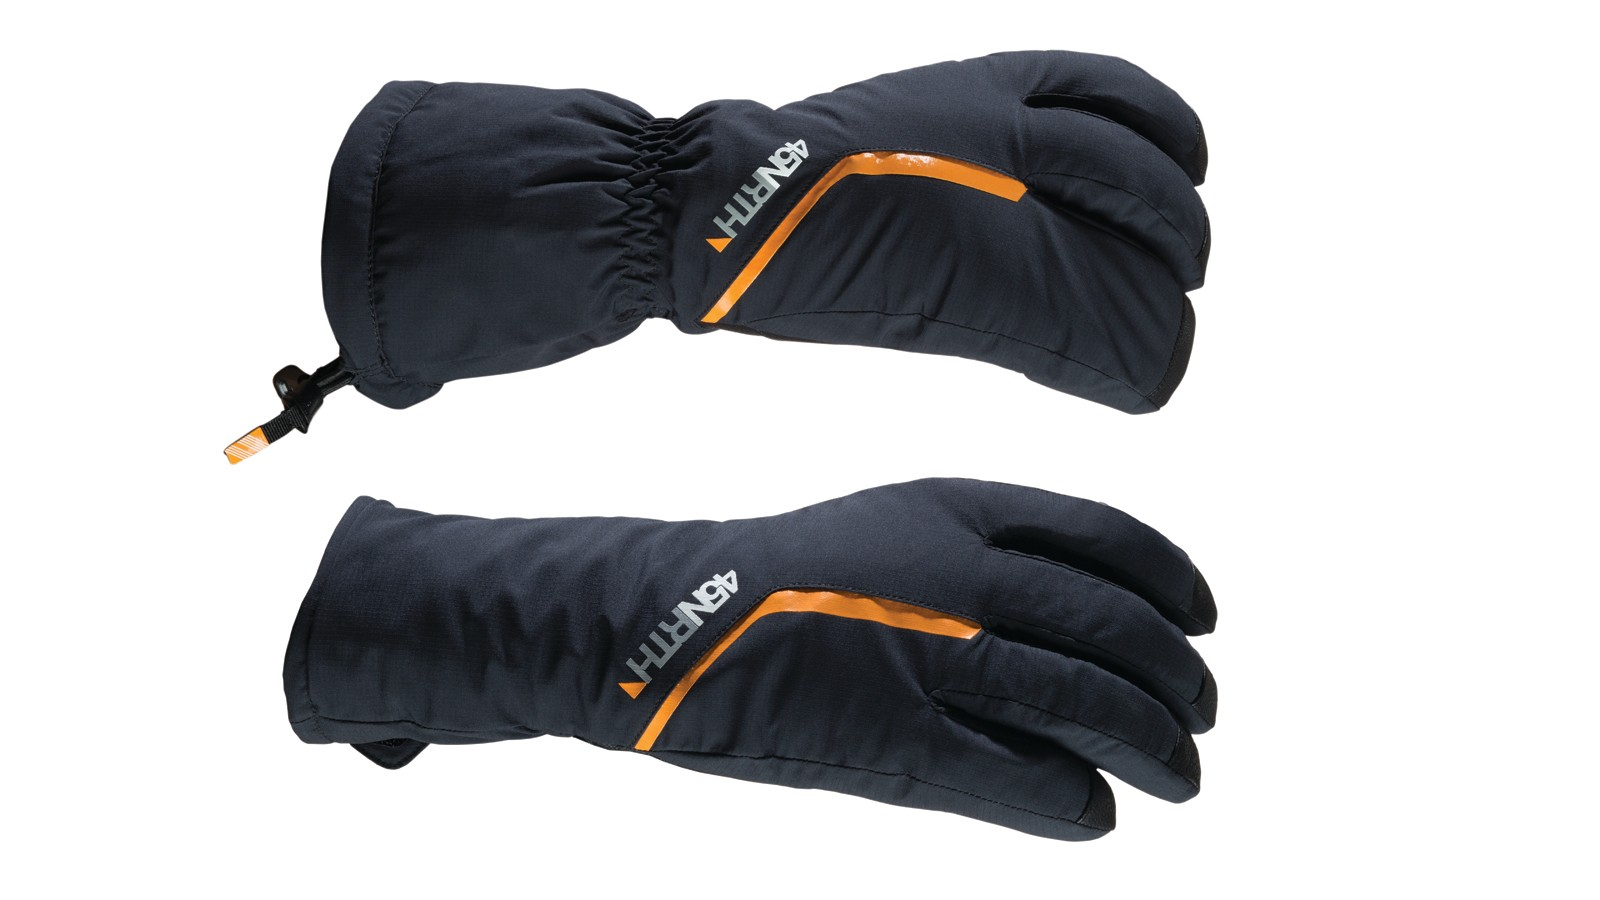 45NRTH's new Sturmfist gloves use traditional insulation on the back but aerogel pads on the palms